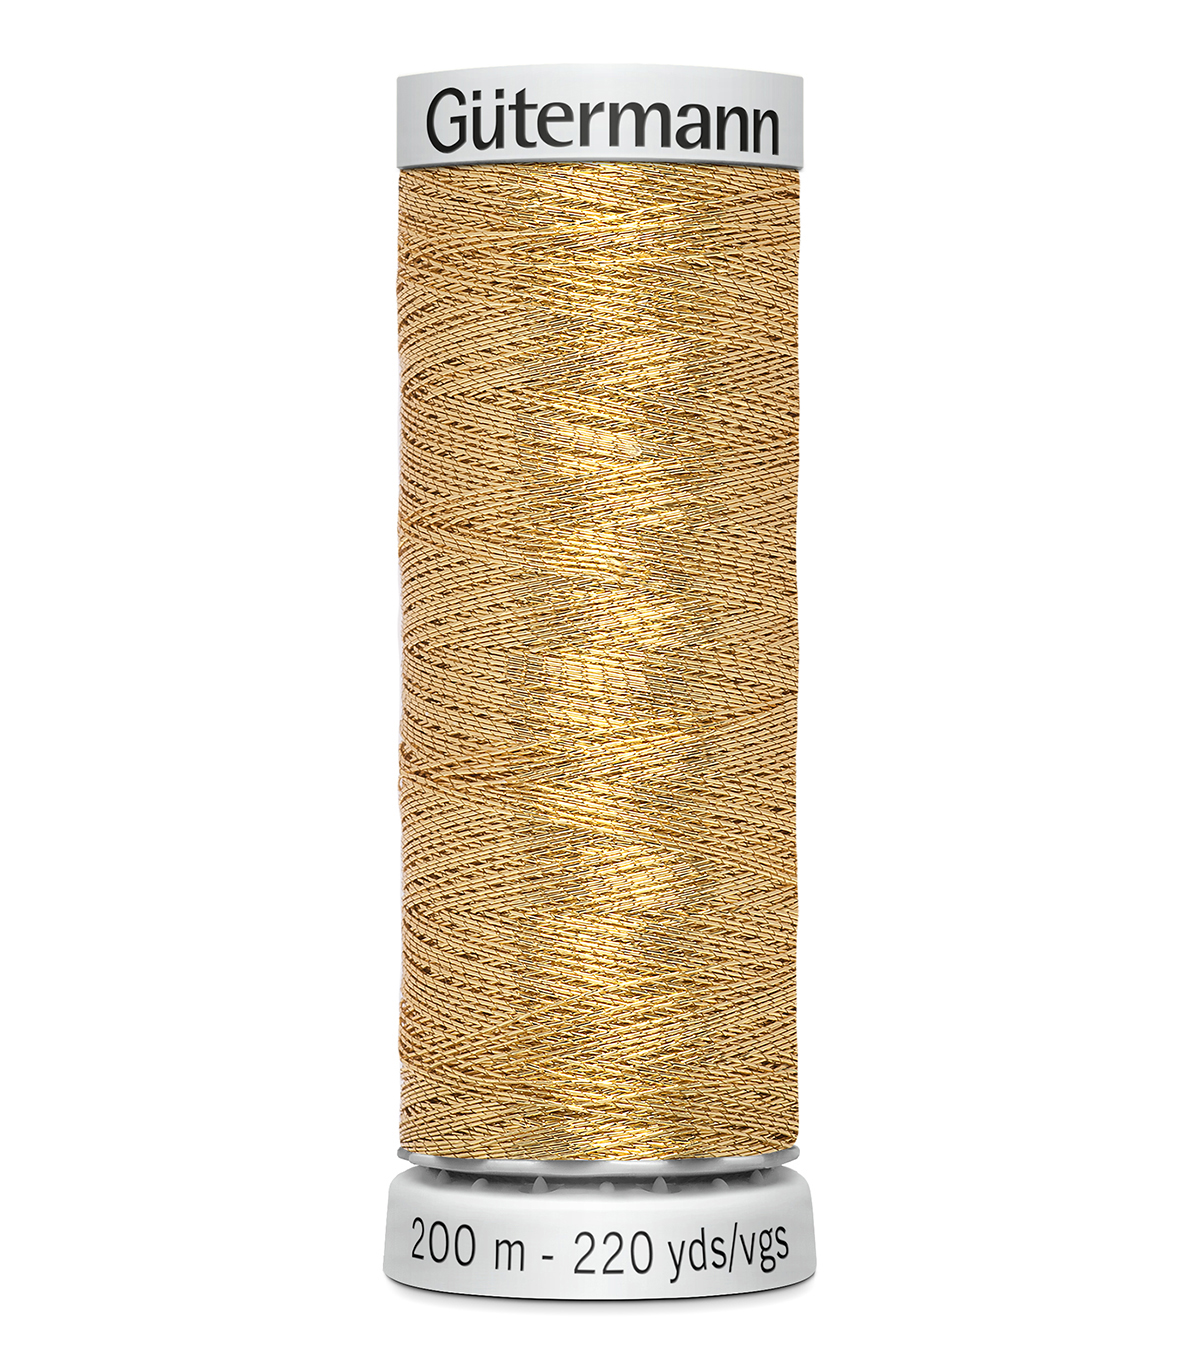 Gutermann 200M Dekor Thread, 200m Dekor Metallic-bronze Gol